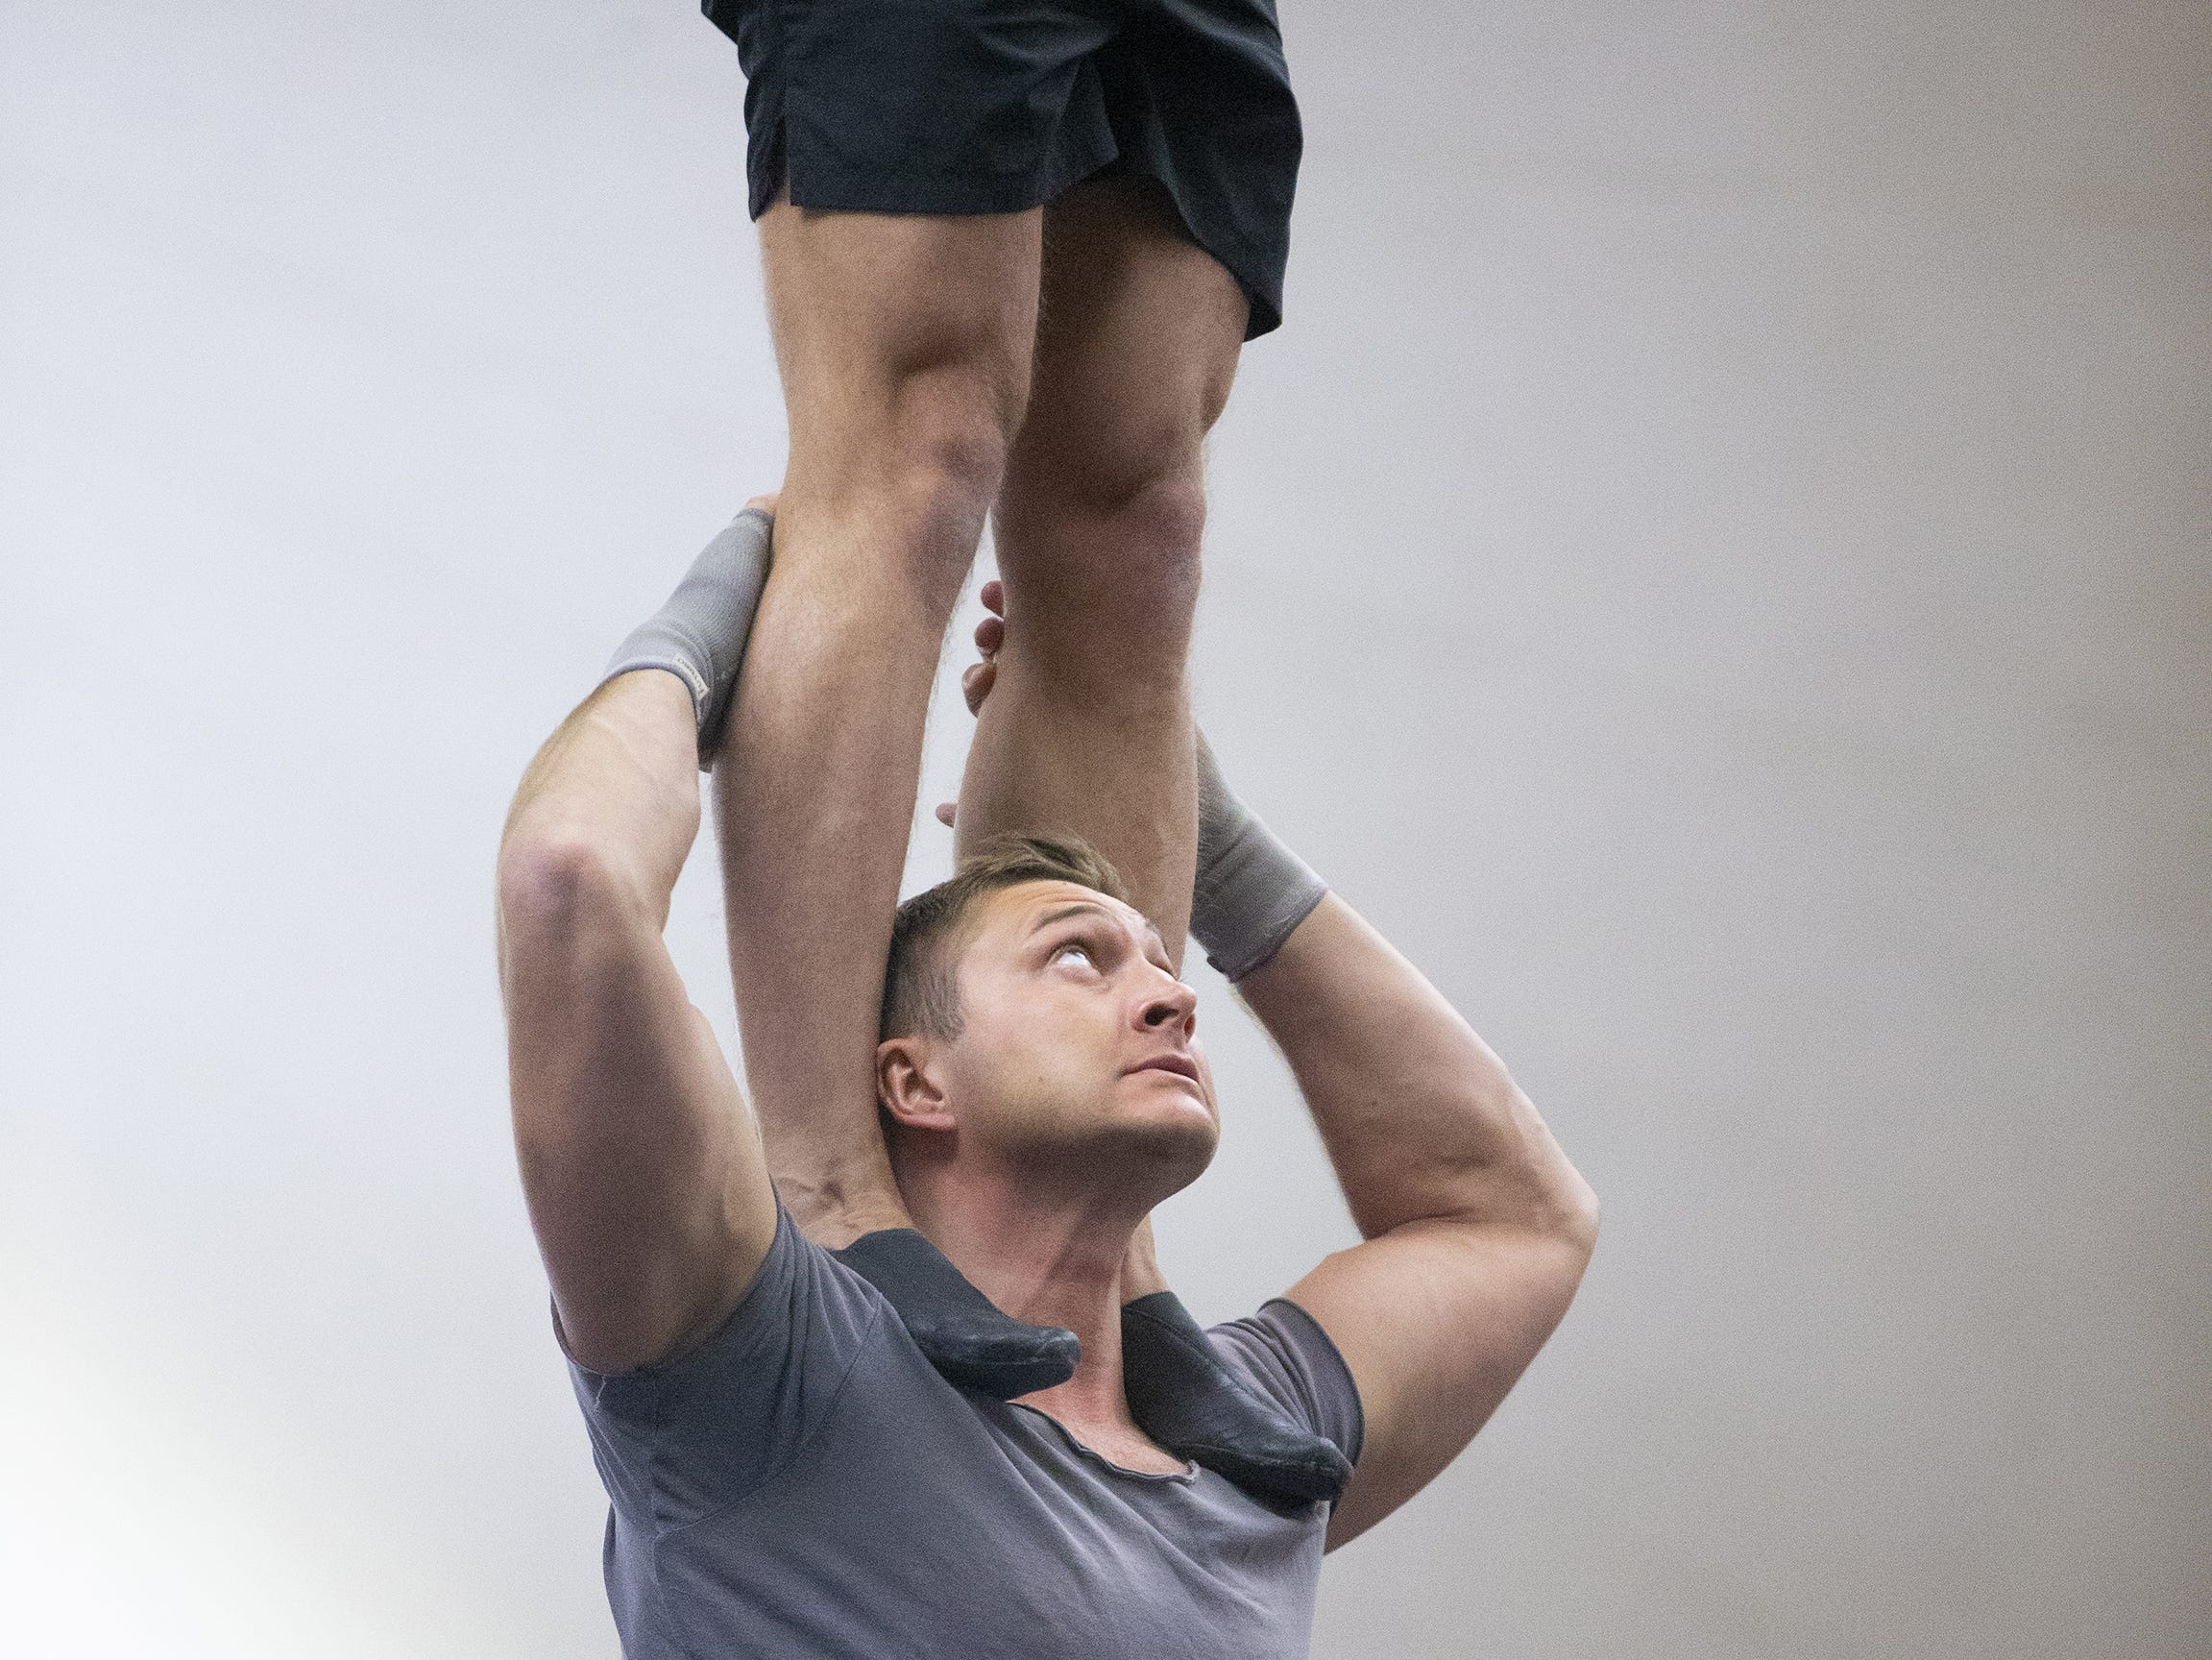 Valeriy Chernyy trains for his performance with Cirque du Soleil's big-top show, Amaluna, at State Farm Stadium in Glendale.